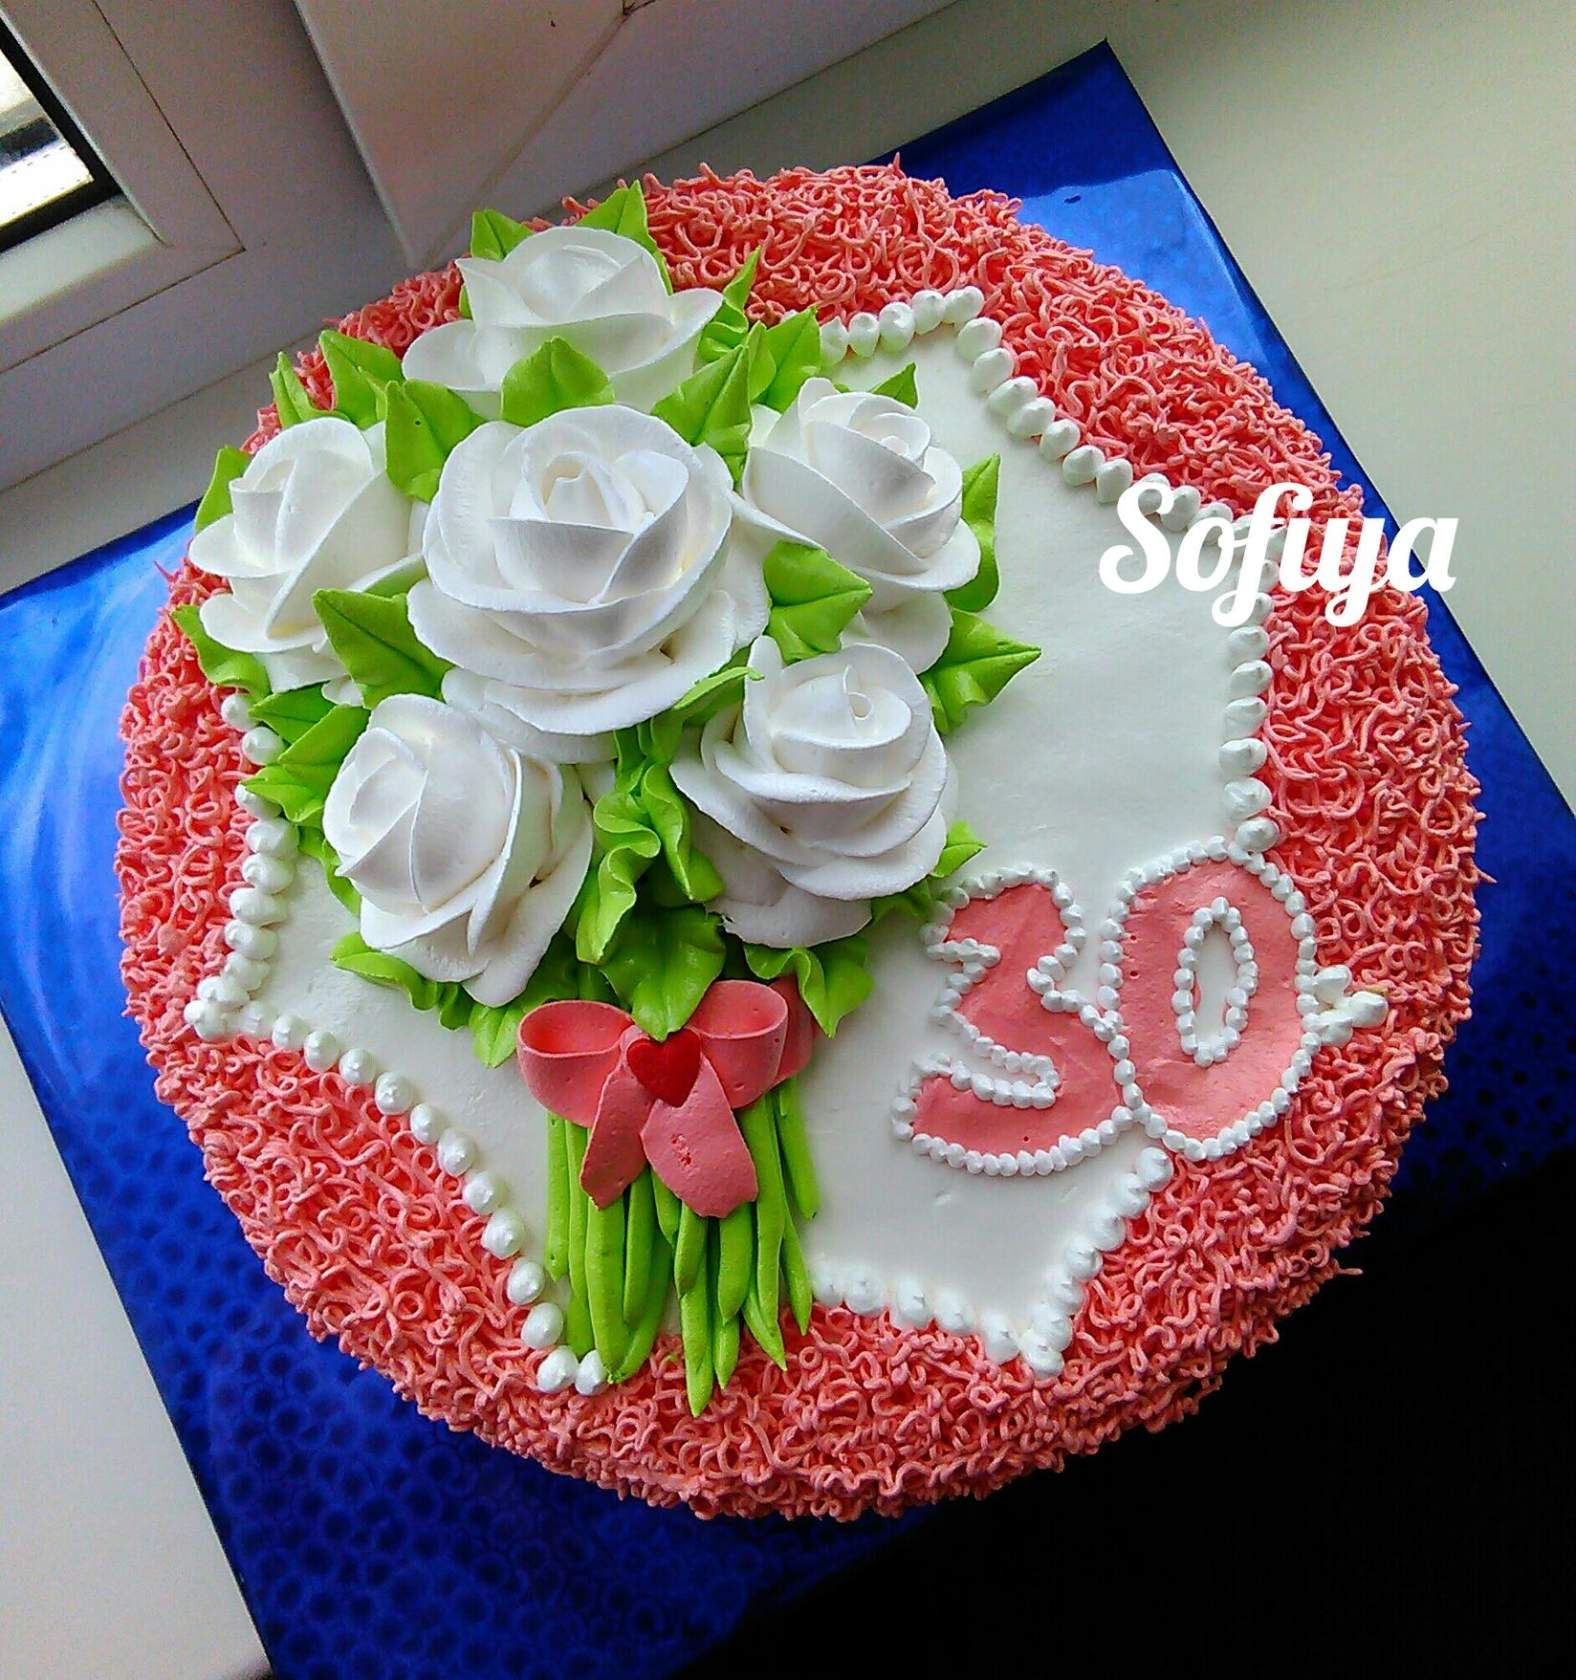 Pin on Cake decorating